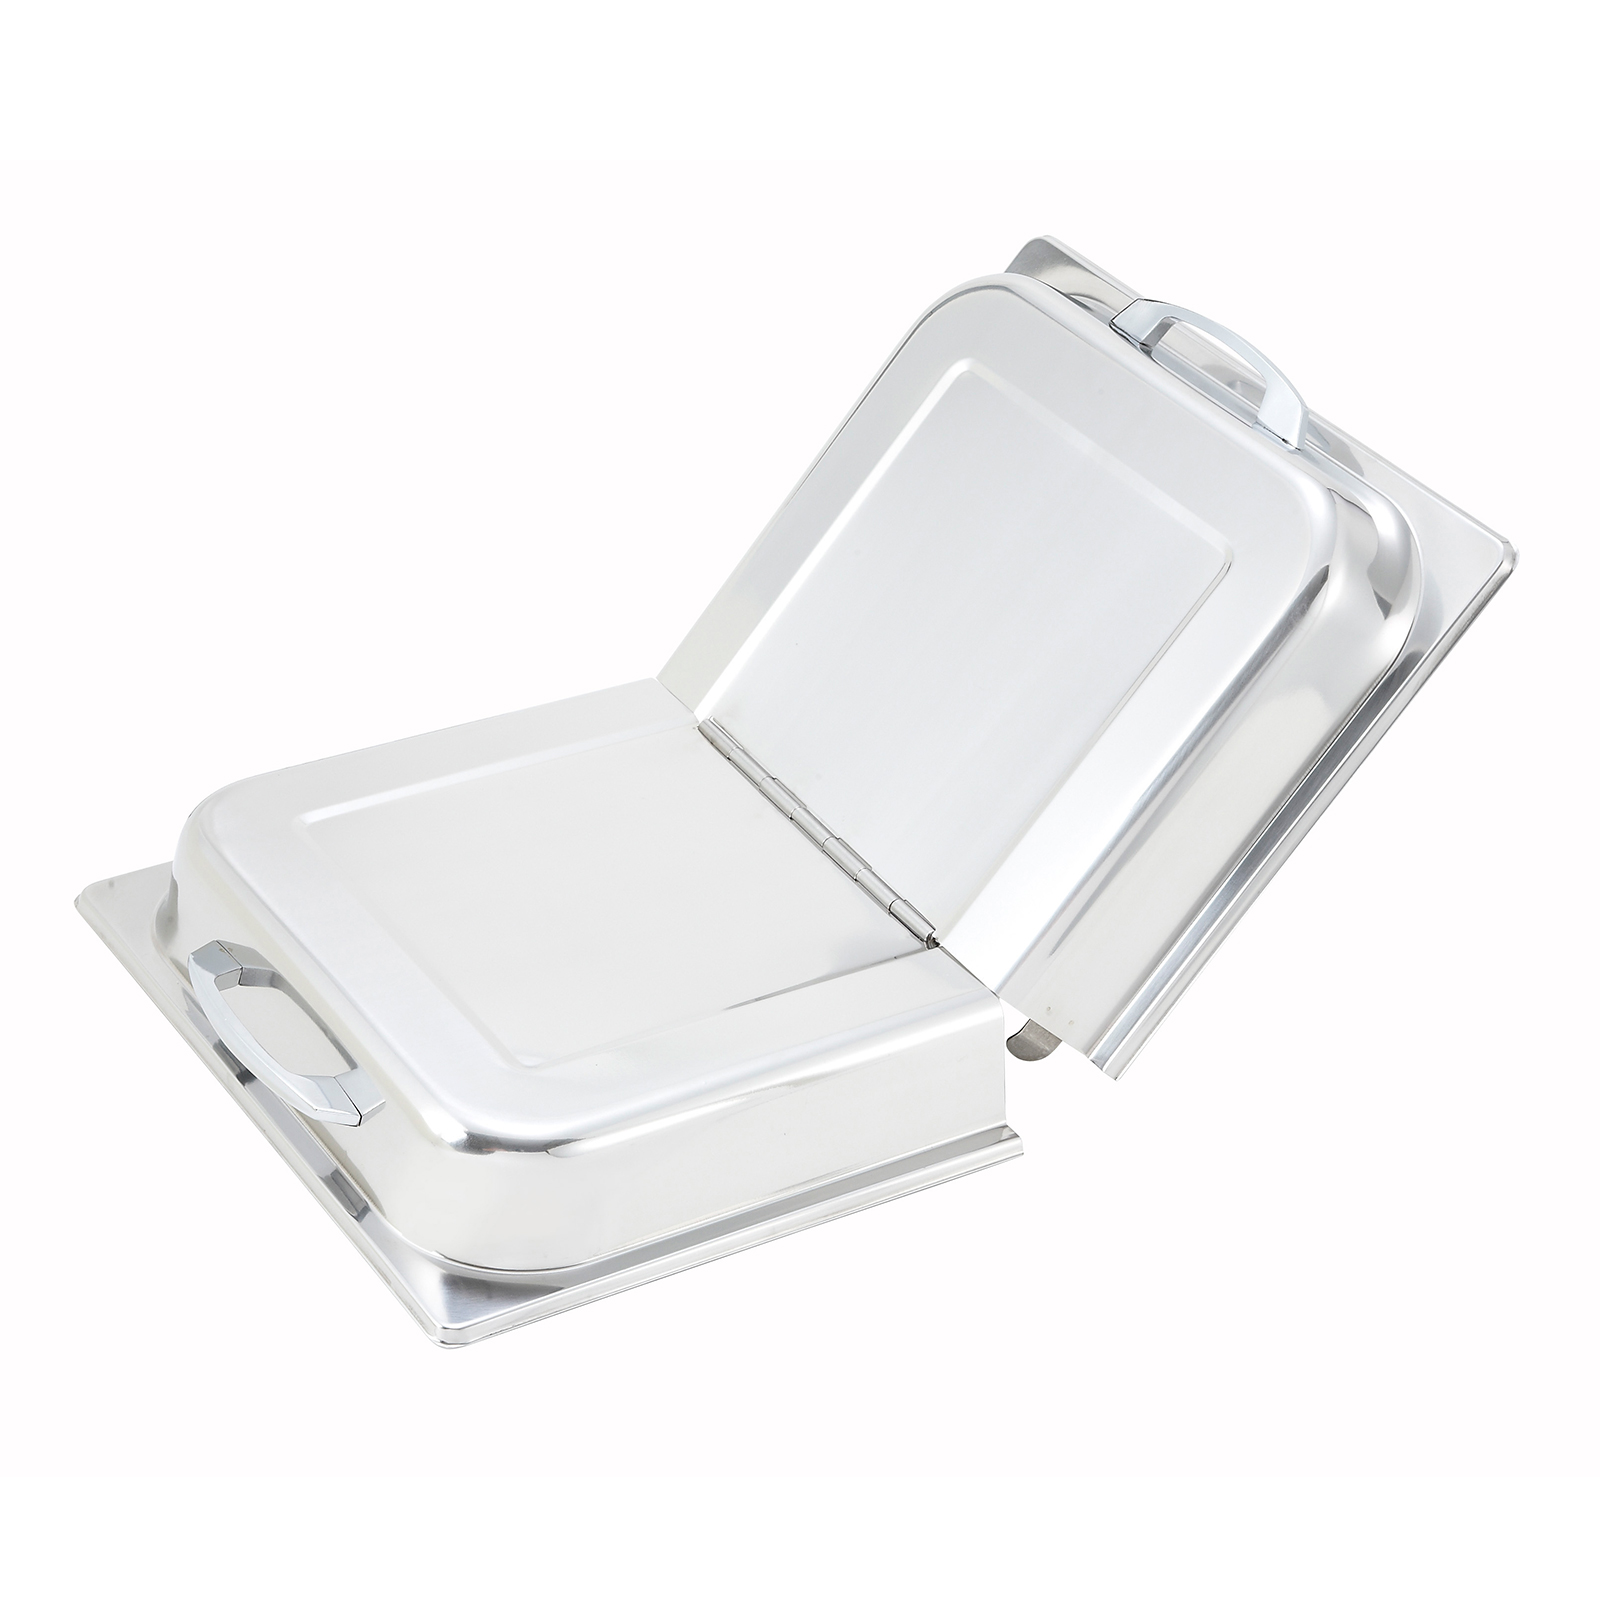 Winco C-HDC steam table pan cover, stainless steel